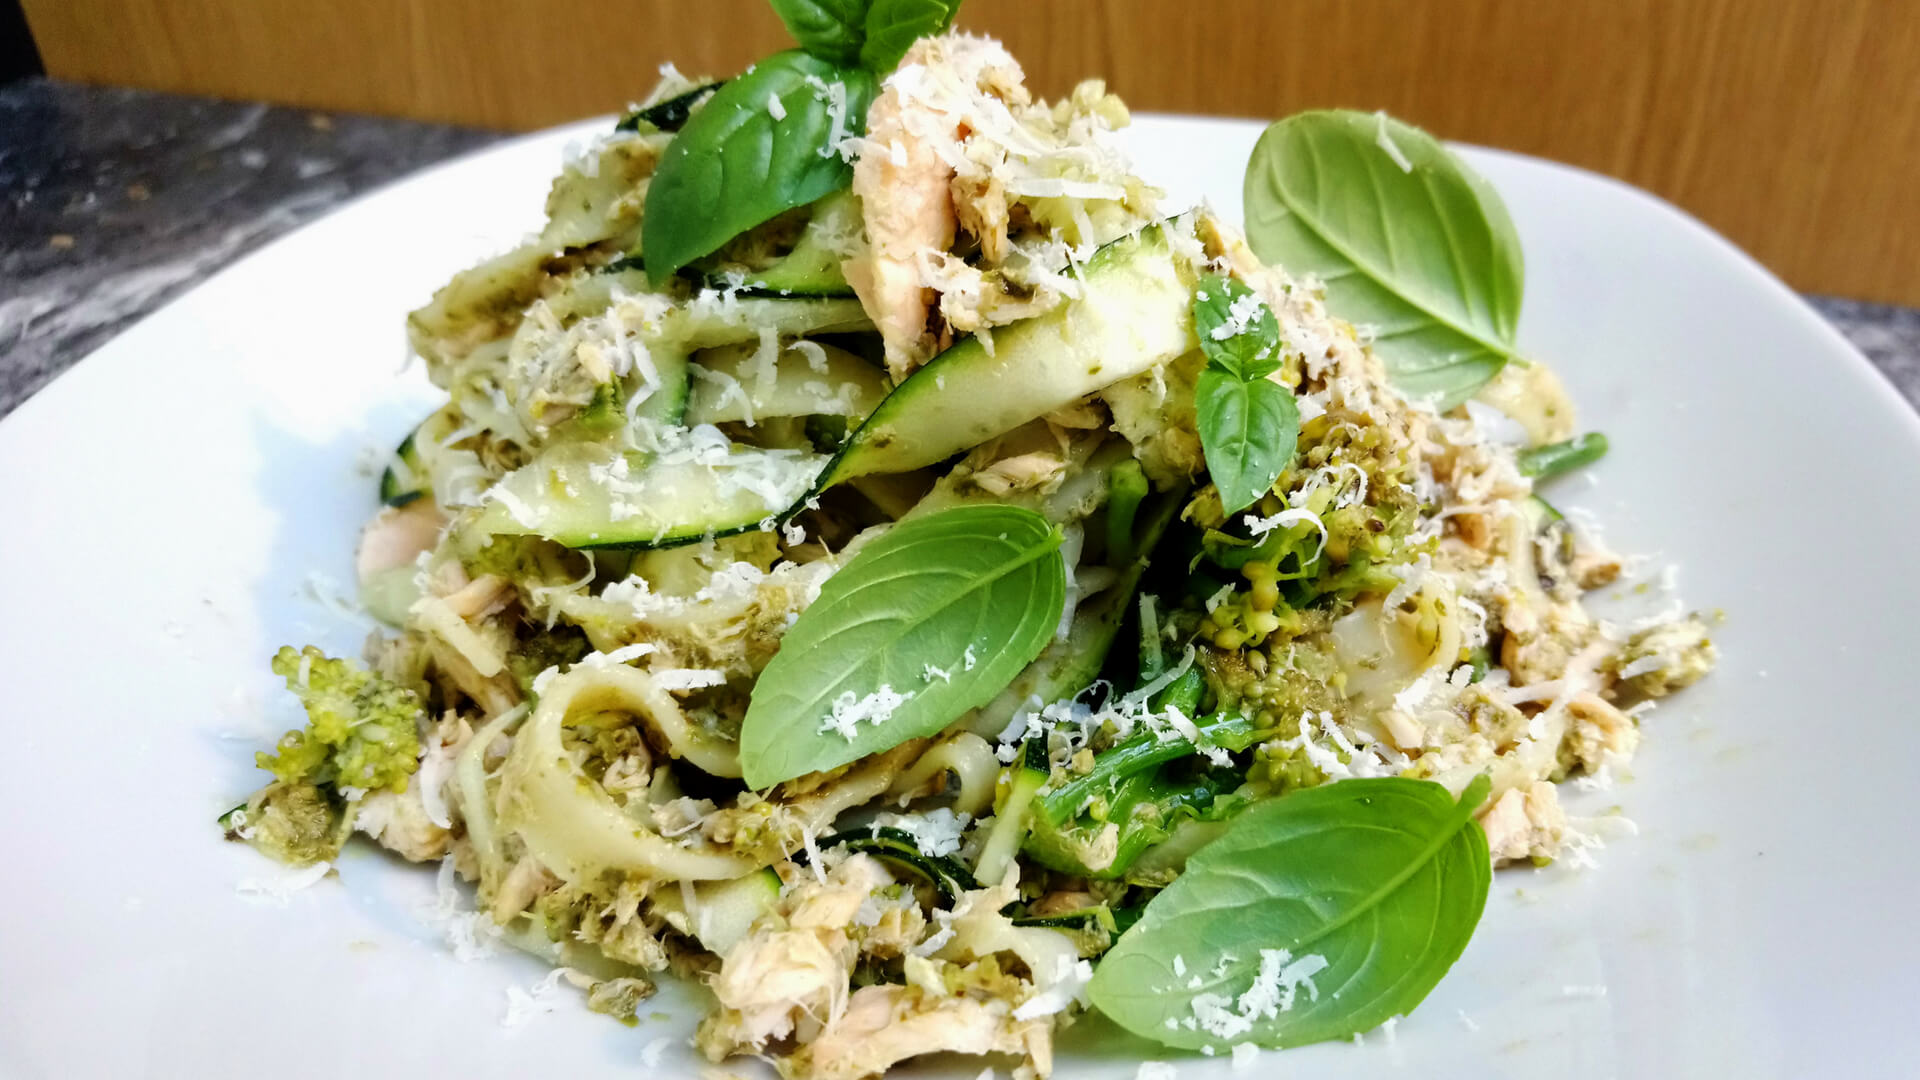 Salmon and pesto tagliatelle